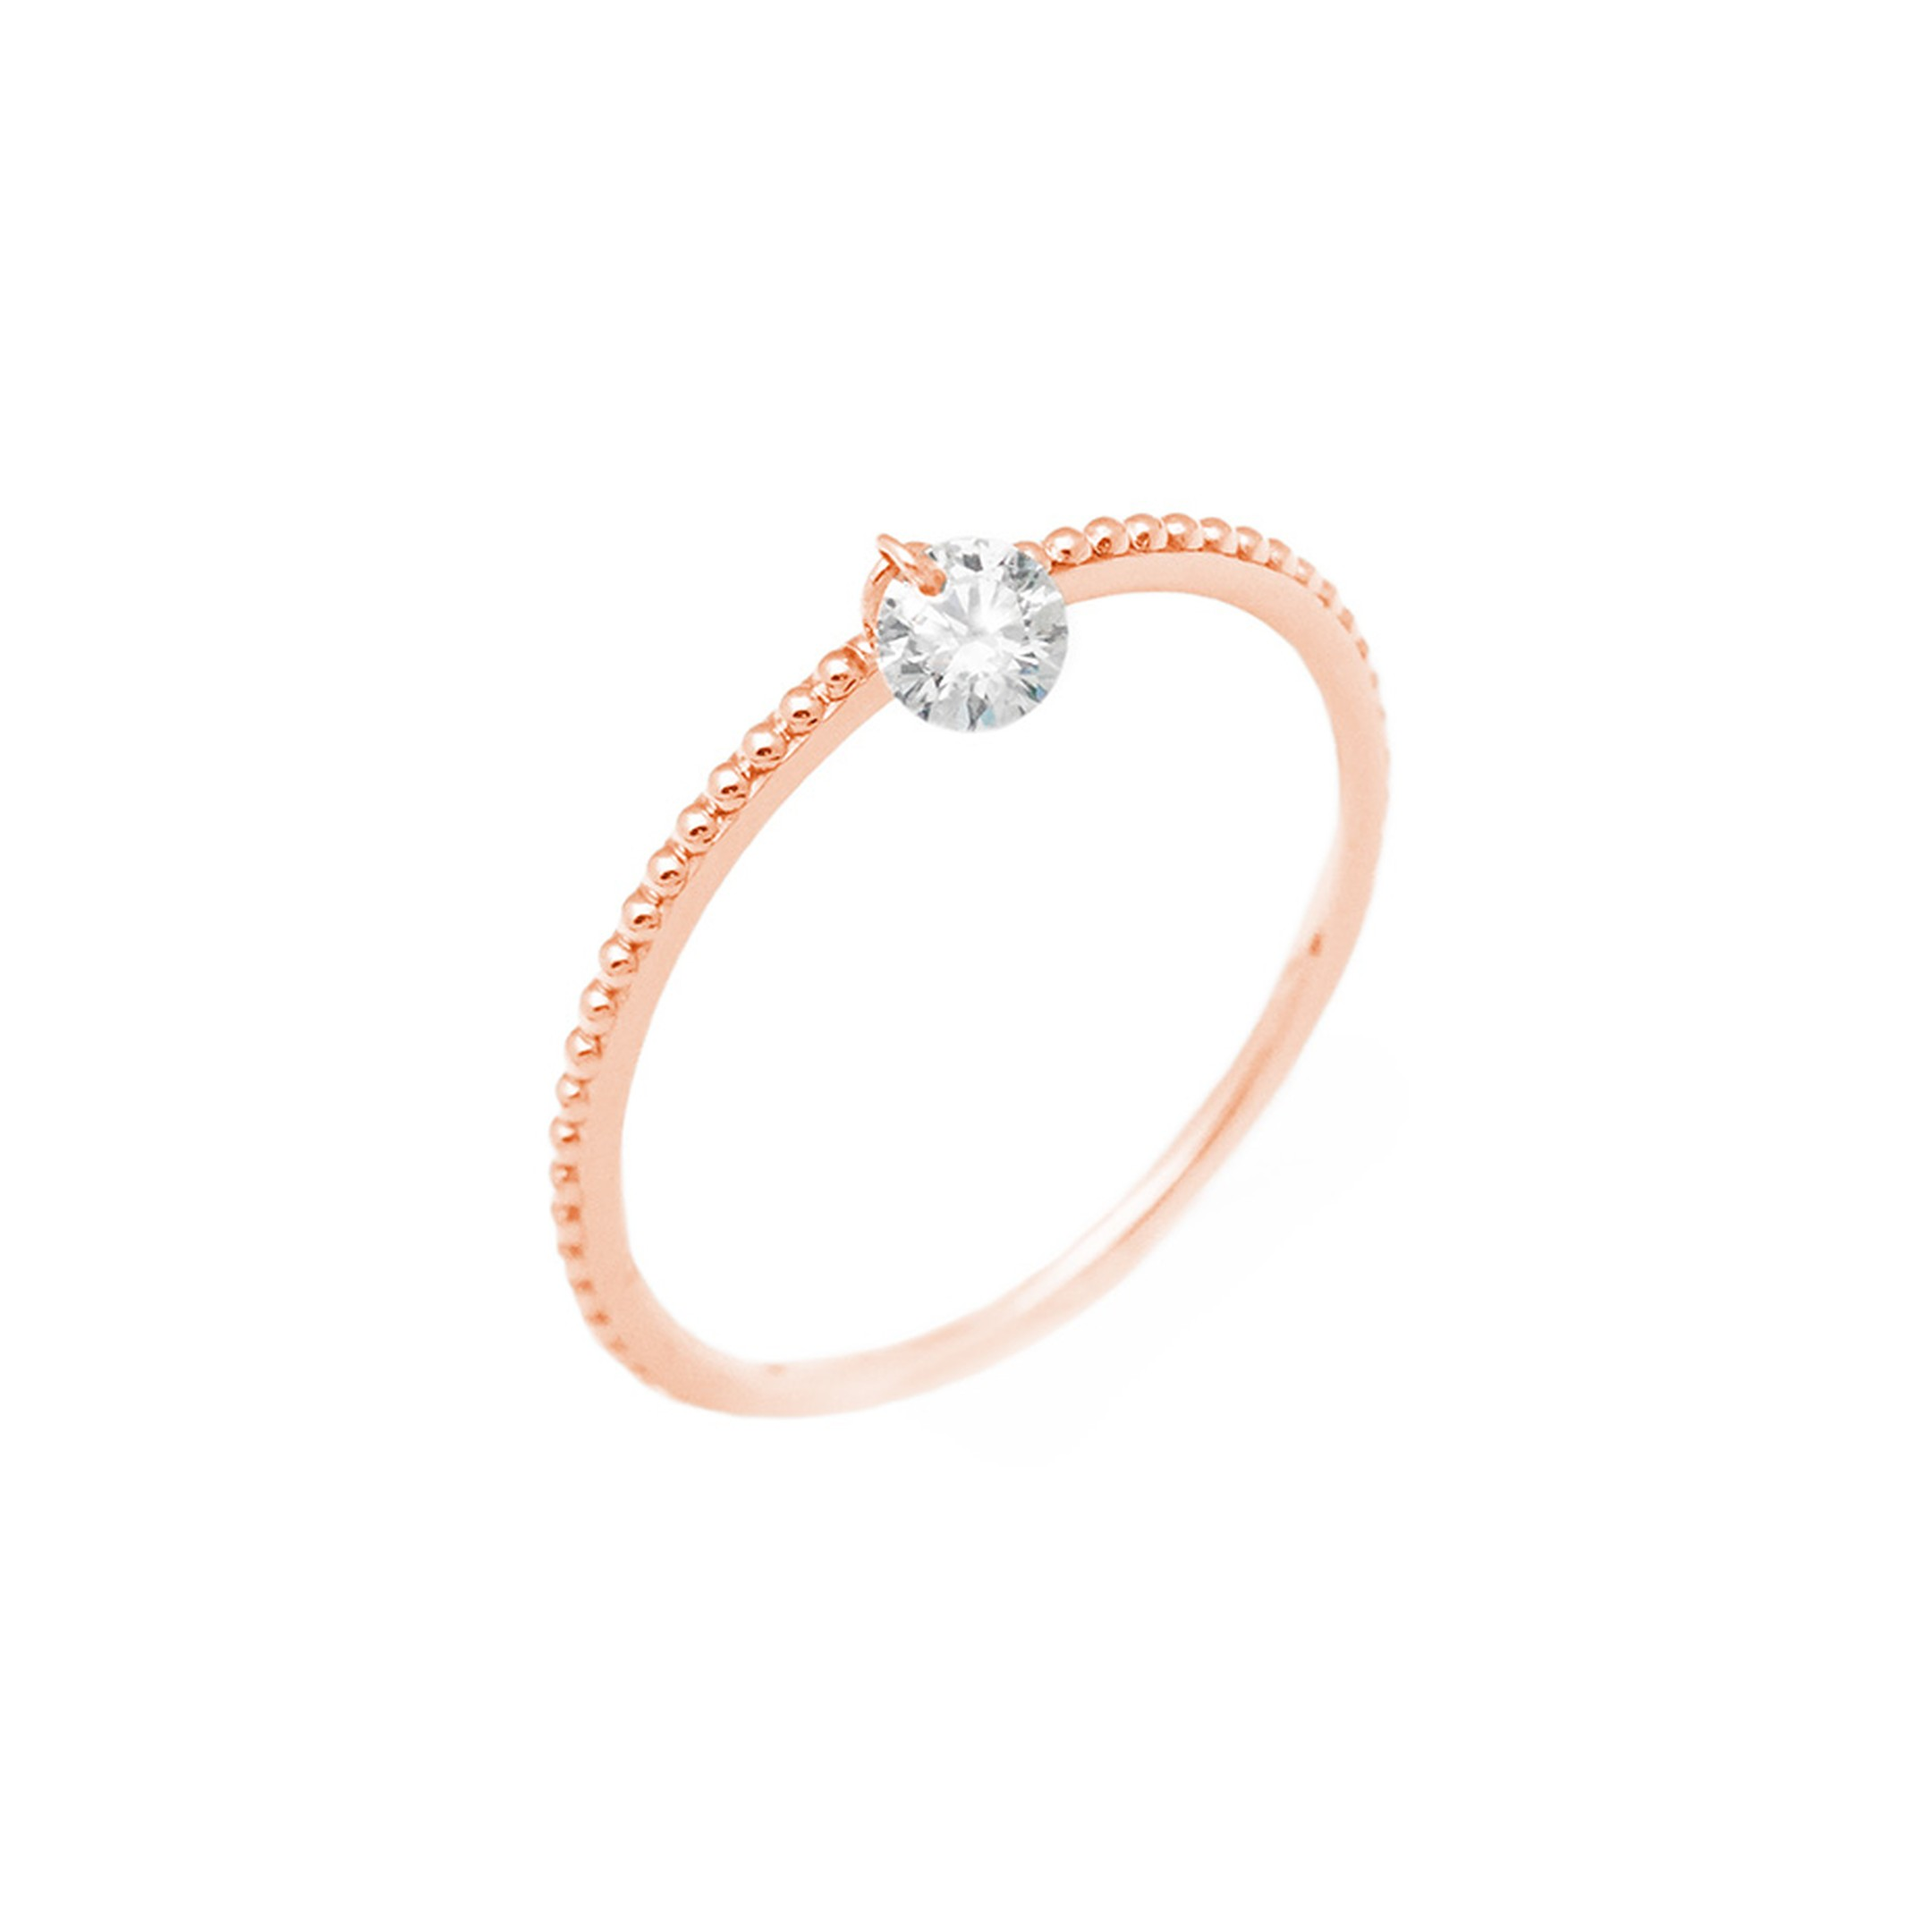 Raphaele Canot Set Free Diamonds collection pink gold ring with a pierced diamond suspended from the centre